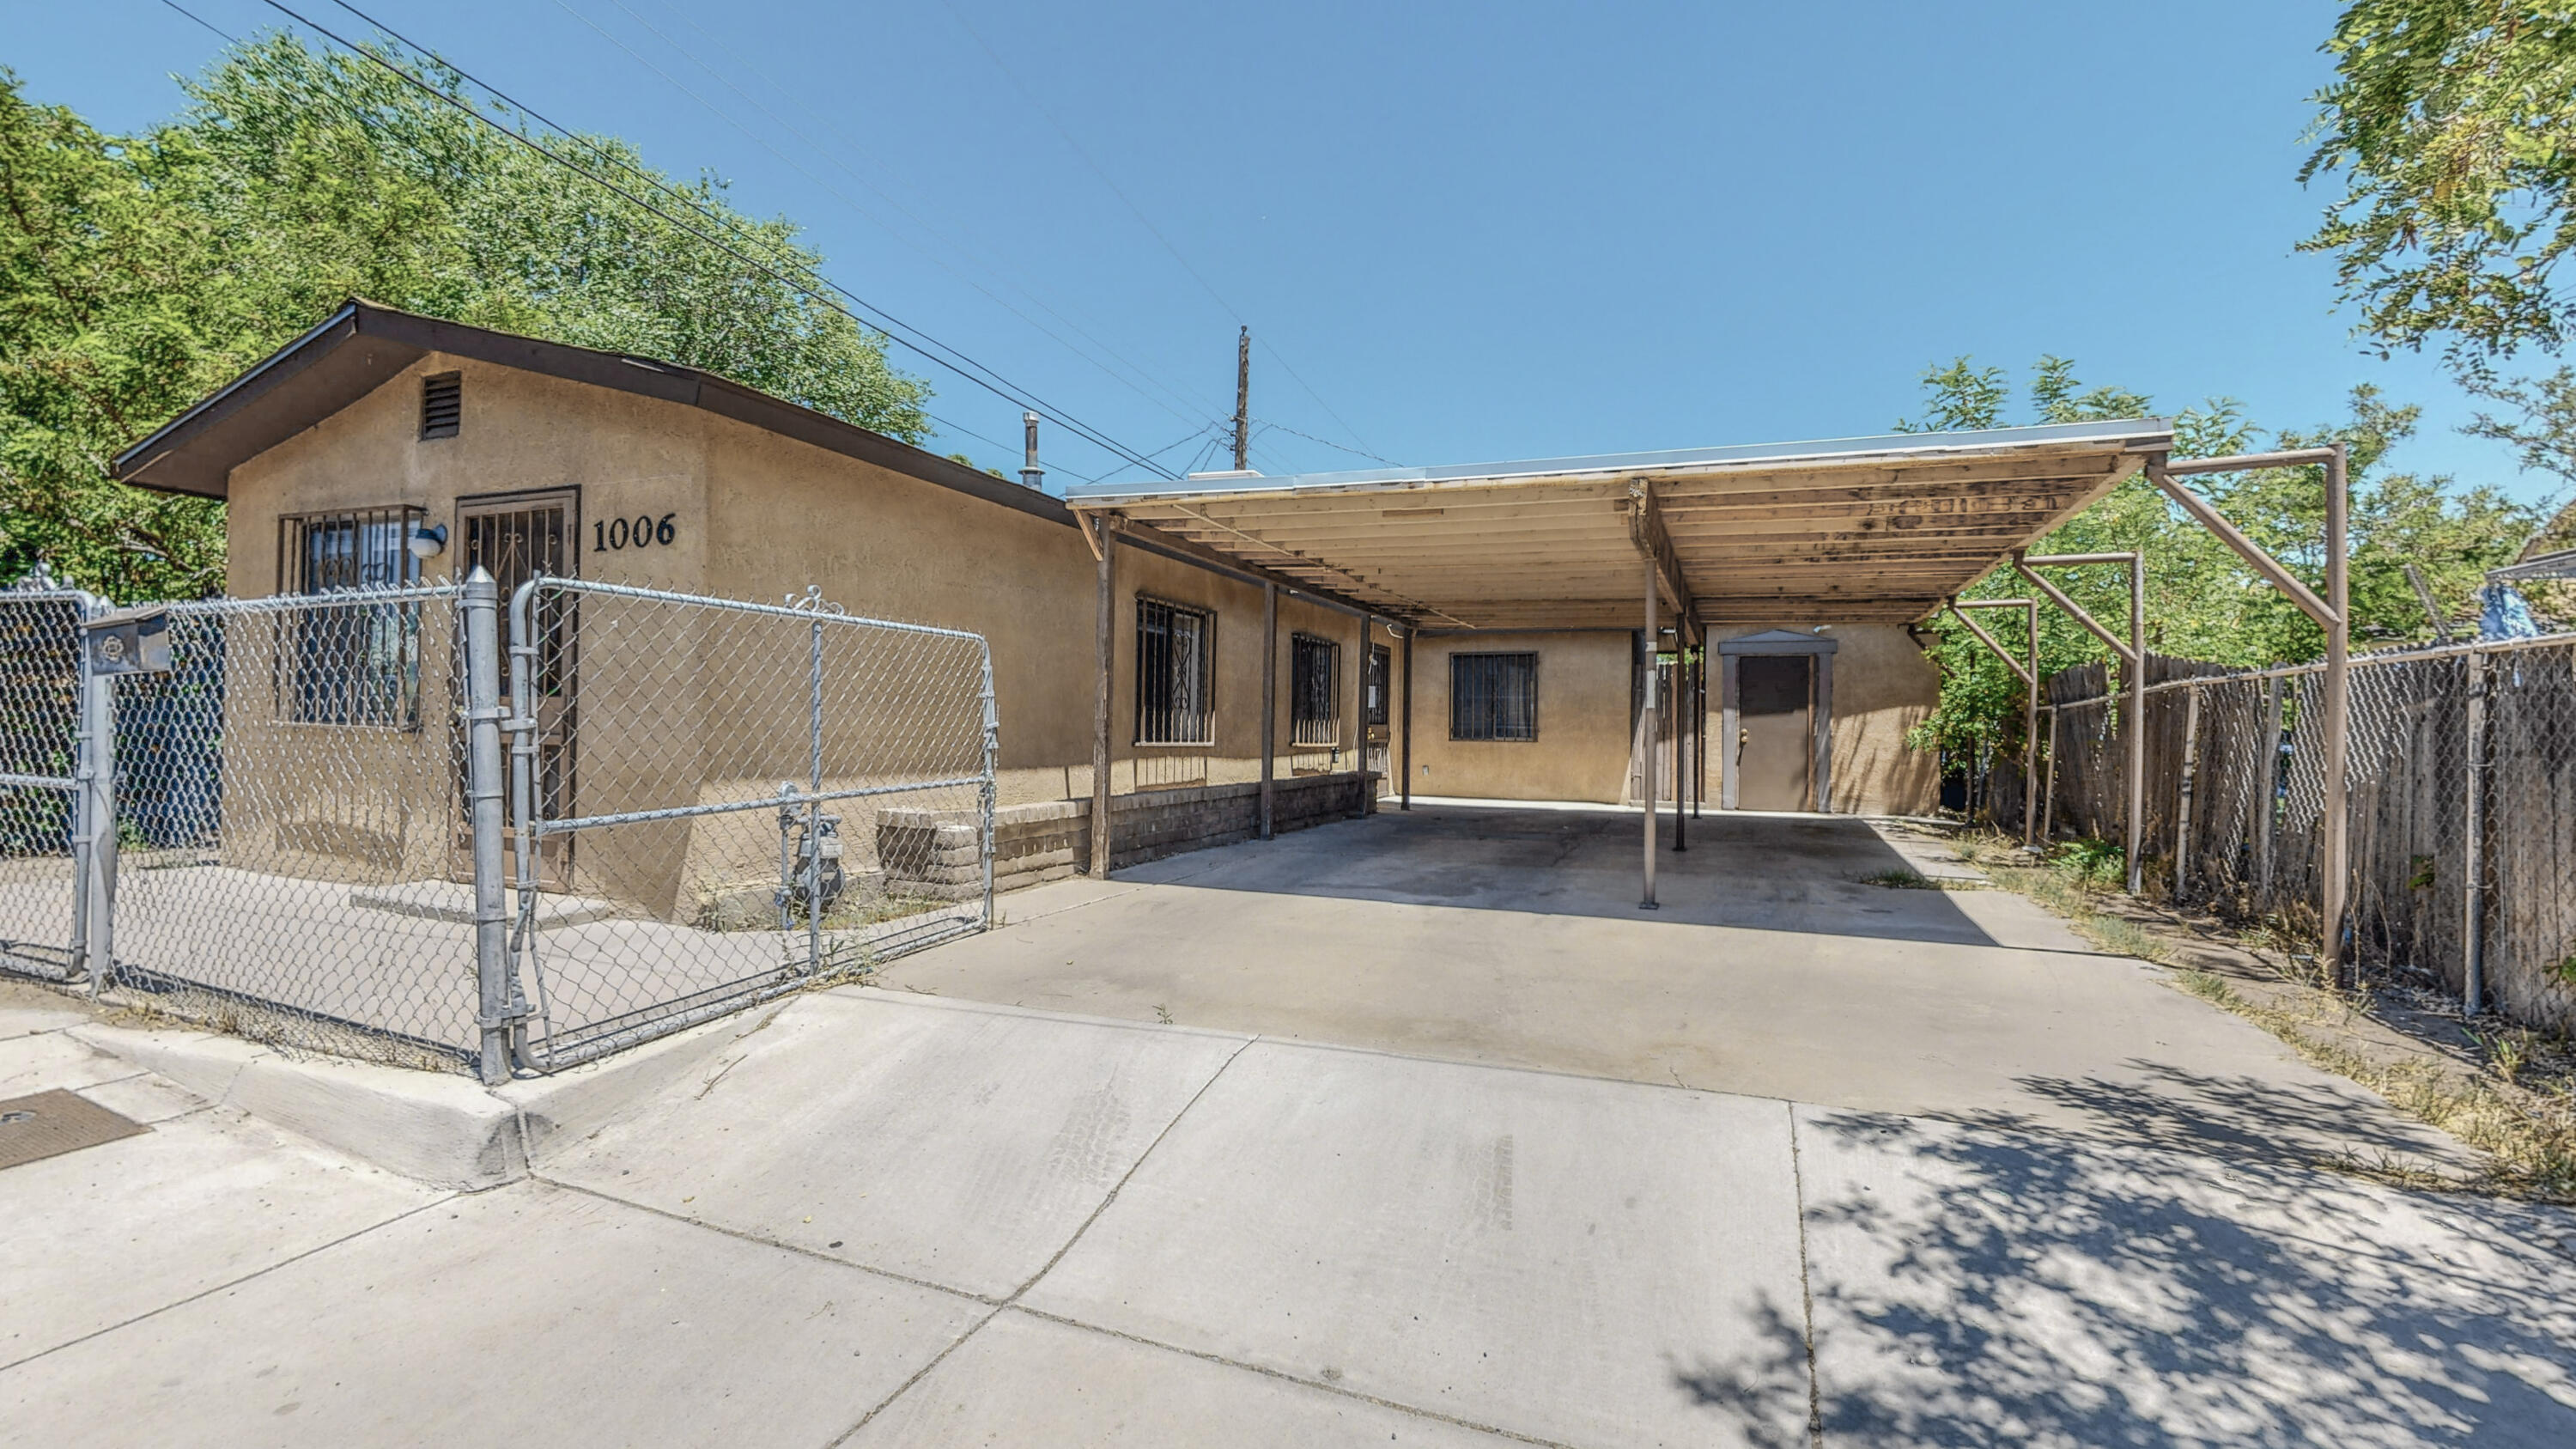 Come and check out this gem located near downtown Albuquerque.  This 2 BR 1 BA home has tile, laminate, and brick flooring throughout.  It also has 1 large 2 car carport and storage shed!  At this price, this home won't last long!